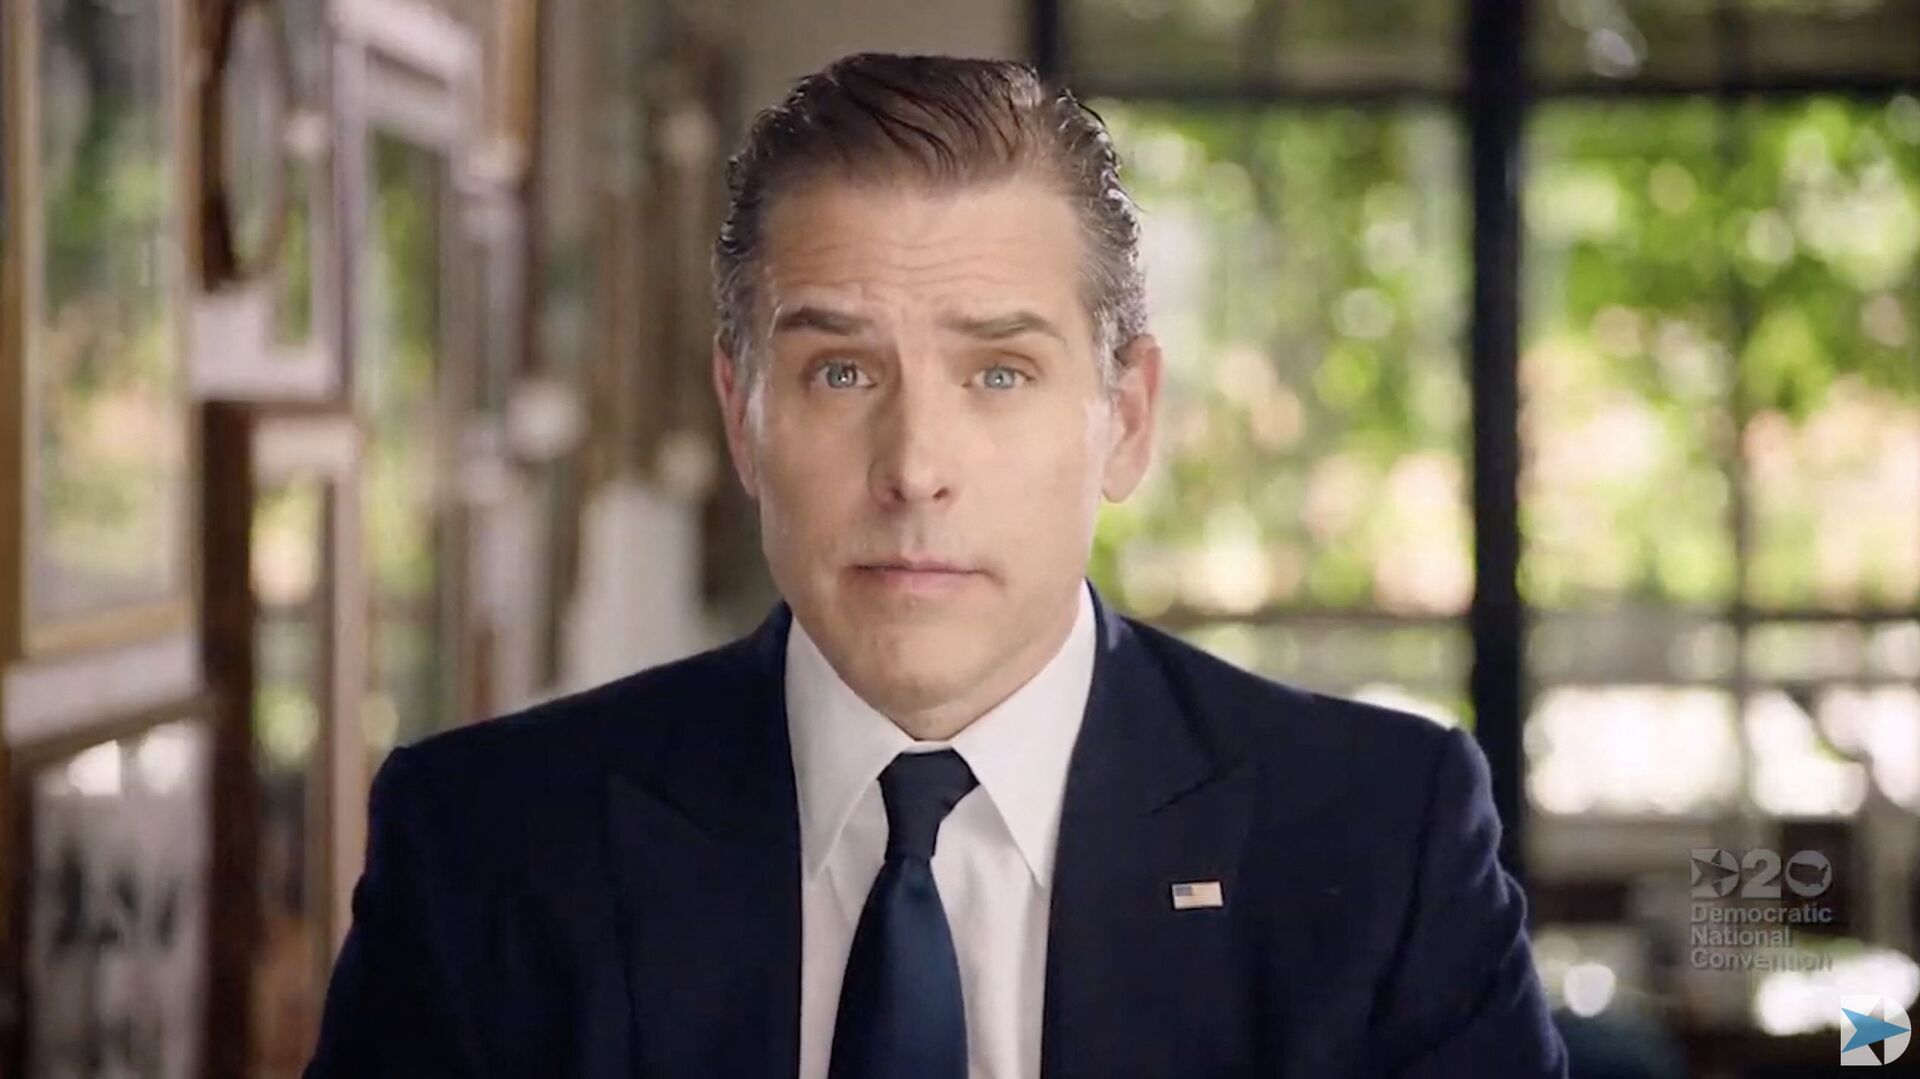 (FILES) In this file photo video grab made on August 20, 2020 from the online broadcast of the Democratic National Convention, being held virtually amid the novel coronavirus pandemic, shows former vice-president and Democratic presidential nominee Joe Biden's son Hunter Biden speaking during the last day of the convention. - Sputnik International, 1920, 17.09.2021